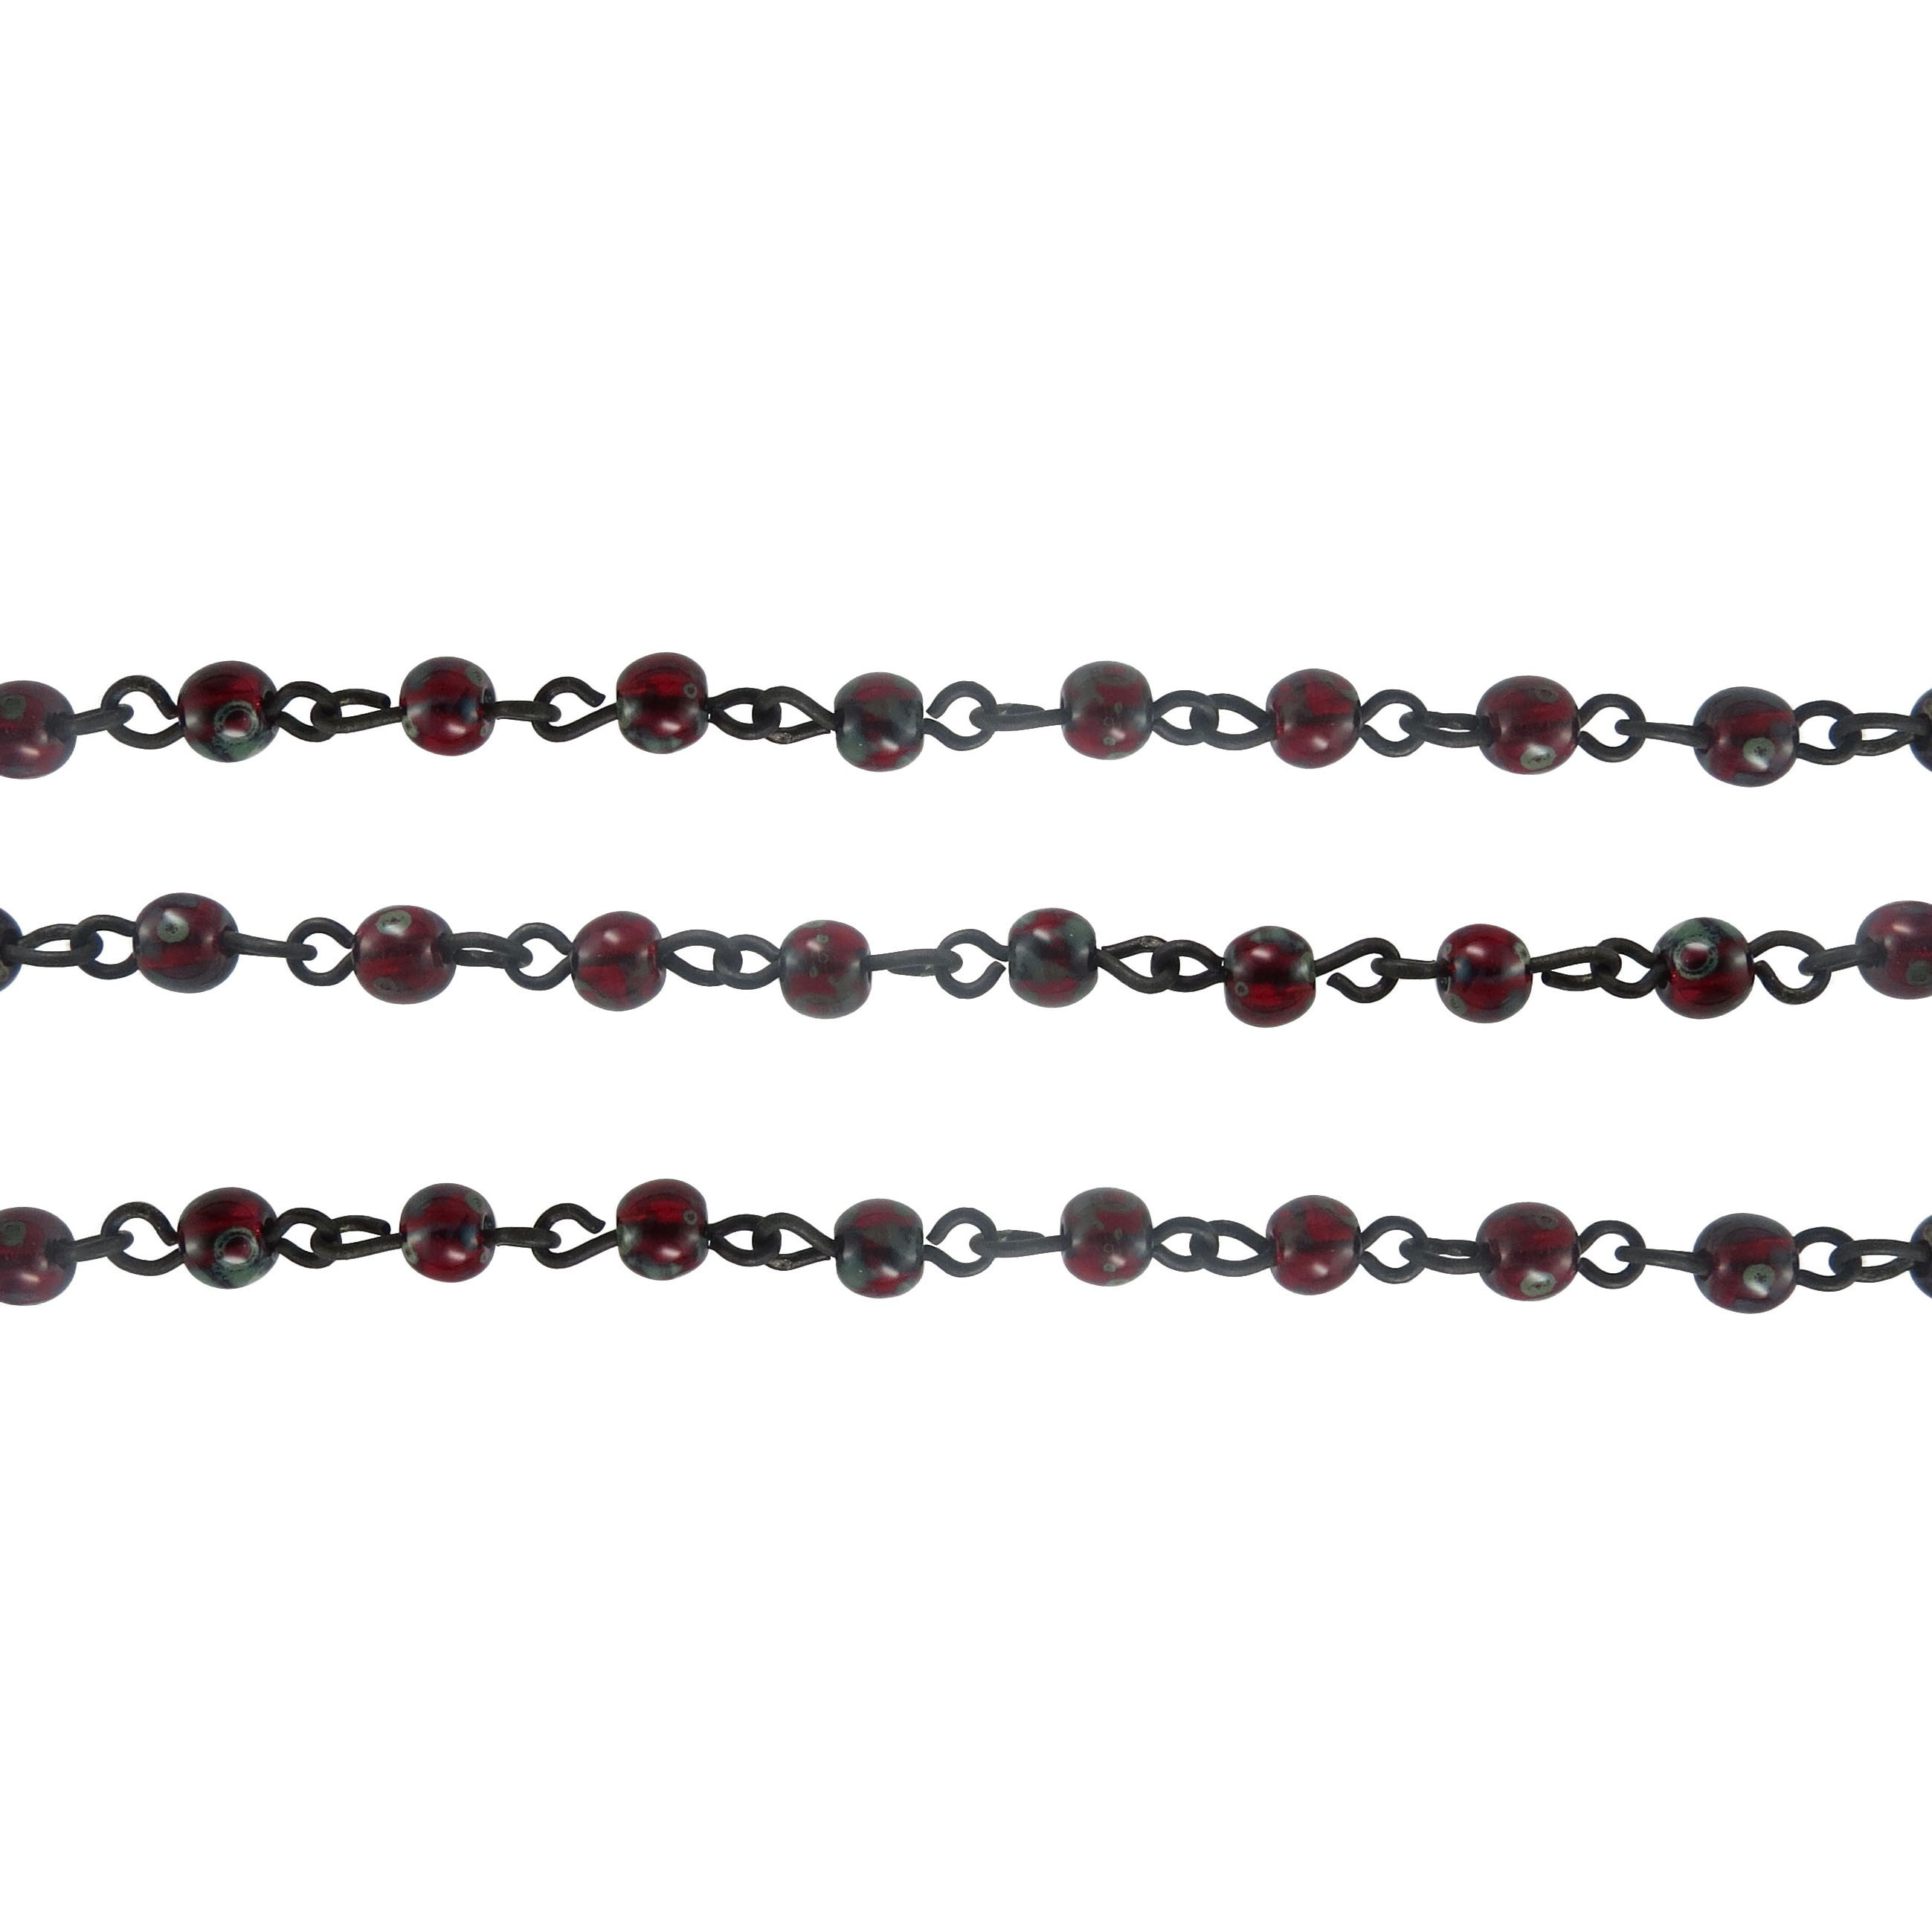 Czech Linked Rosary Chain, 4mm, Round Ruby Marble, Black Link (Sold by the Meter)